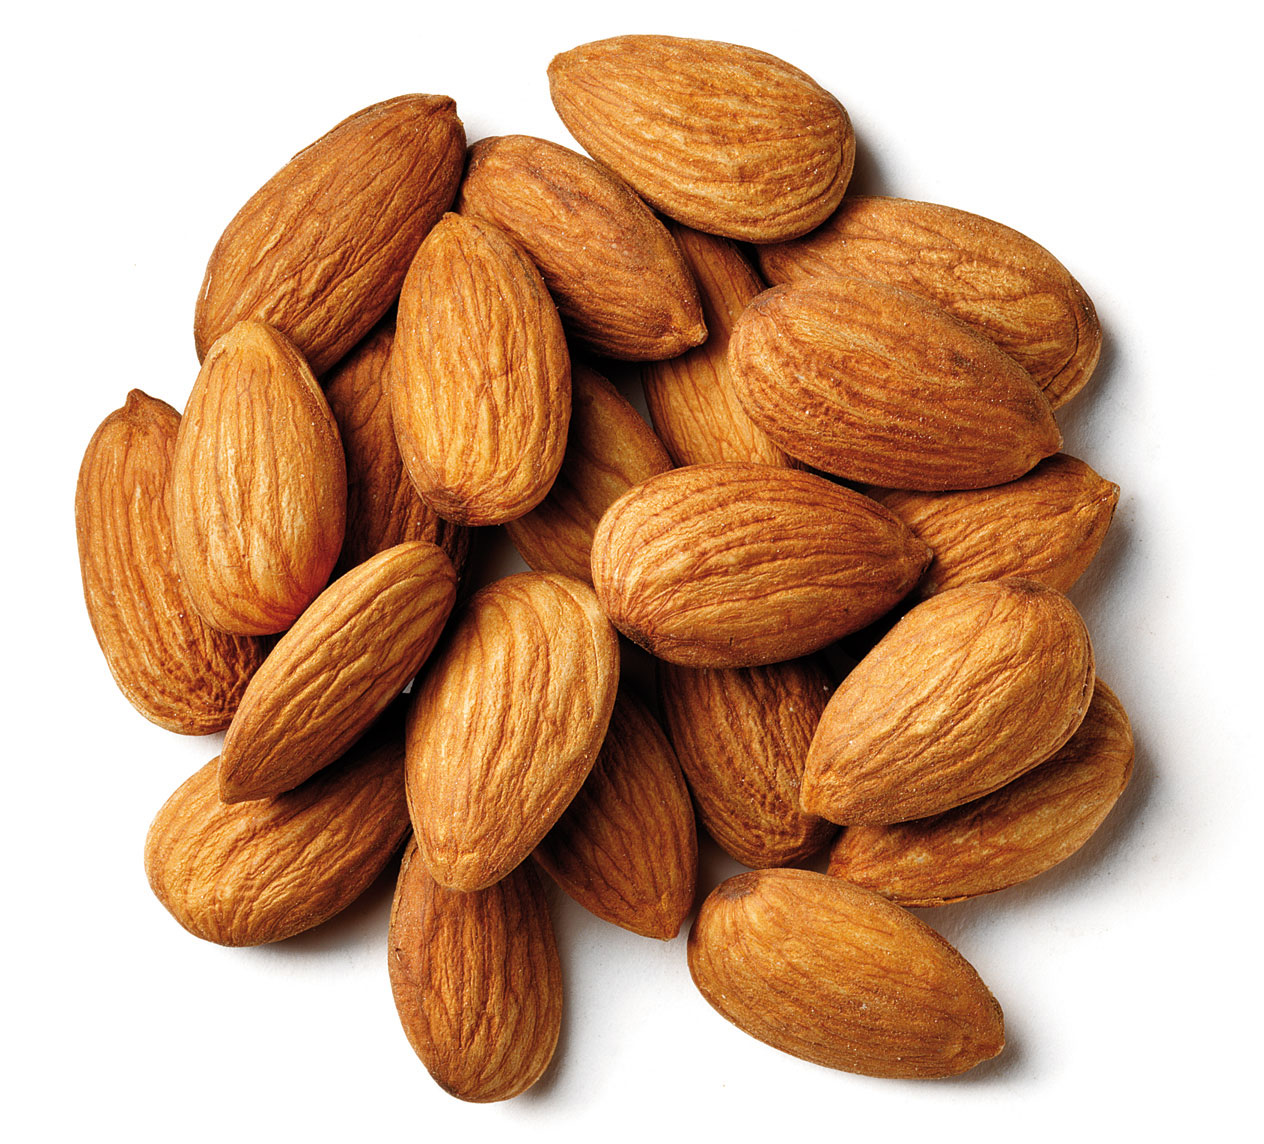 almonds improve cholesterol in people with coronary artery disease